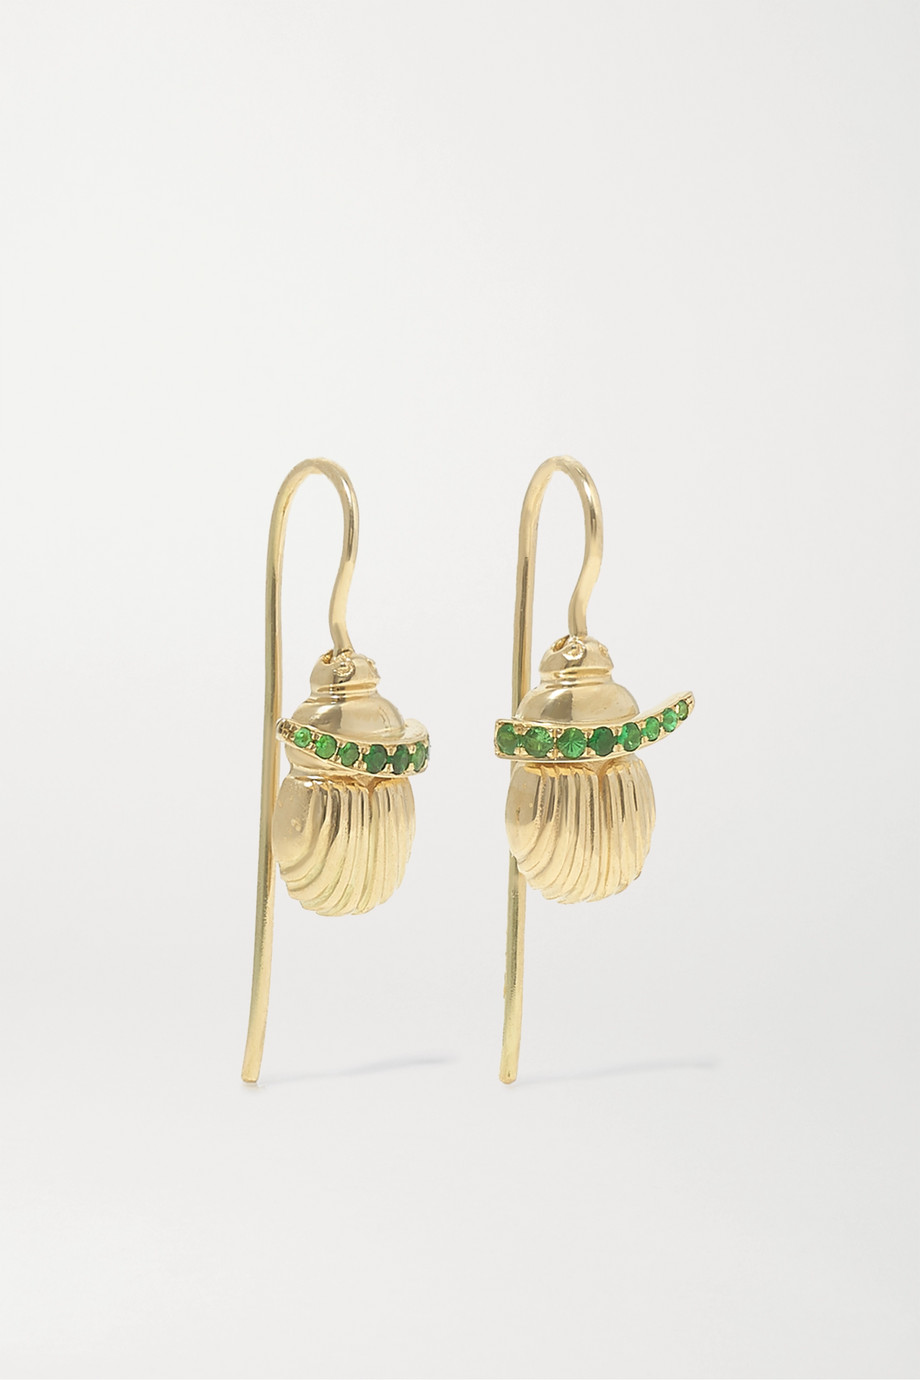 Lito Franca 14-karat gold tsavorite earrings